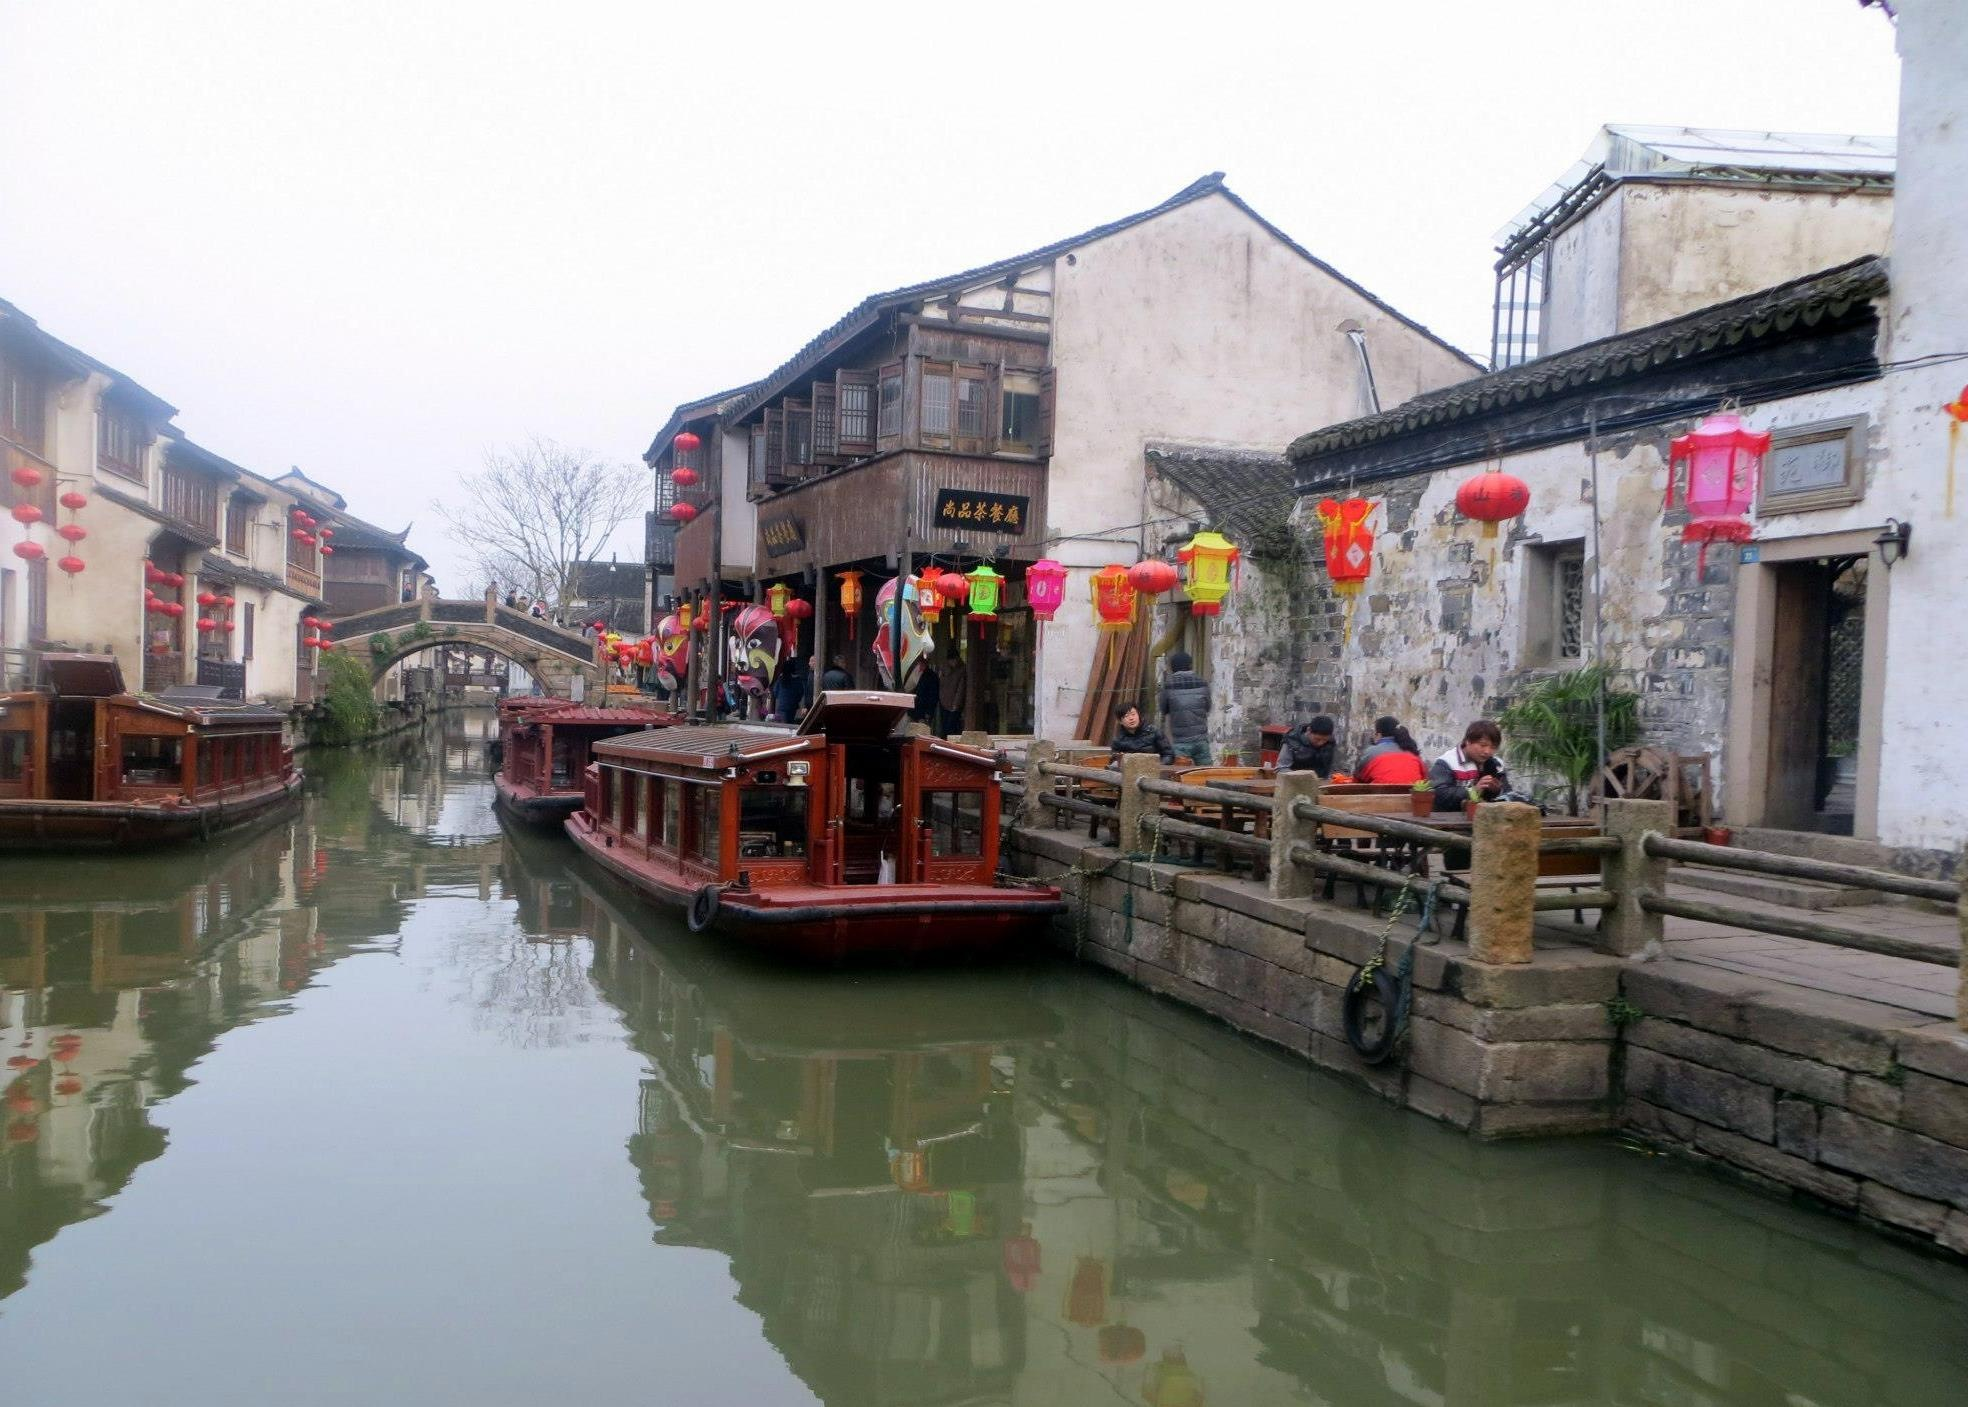 Canals of Suzhou by J.R. Gonzales